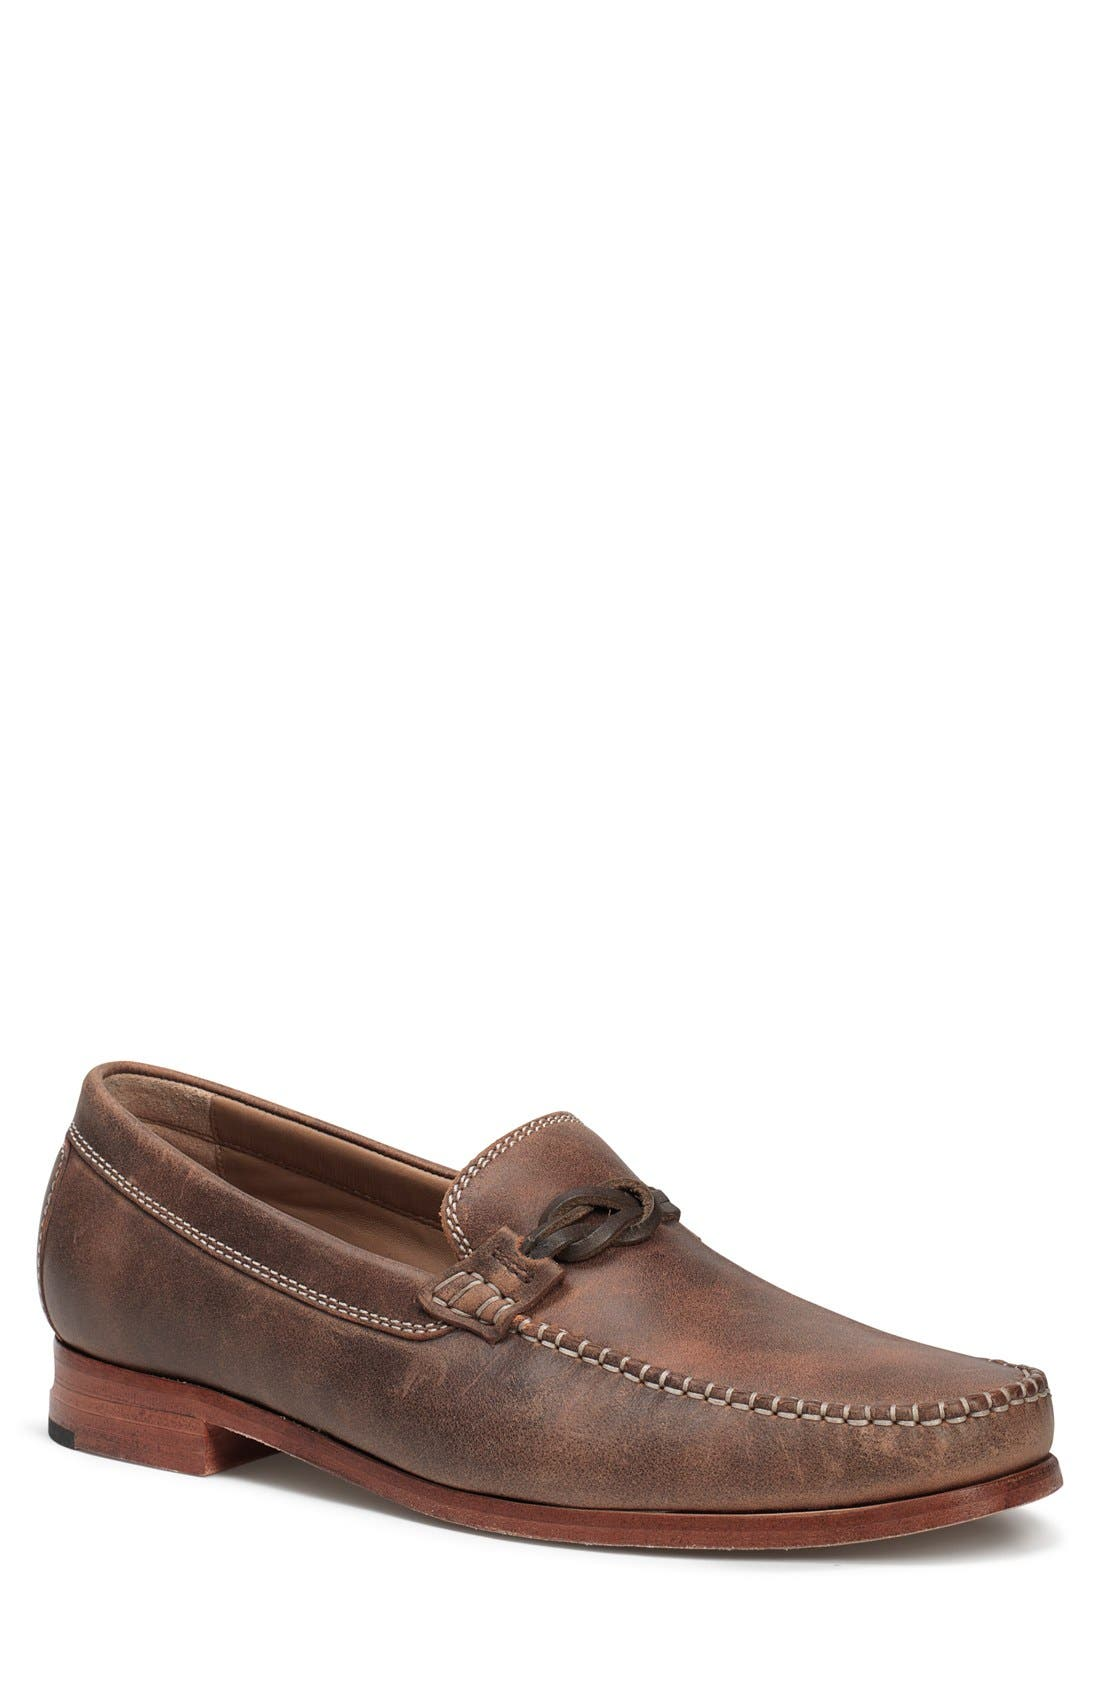 'Seth' Loafer,                         Main,                         color, BROWN